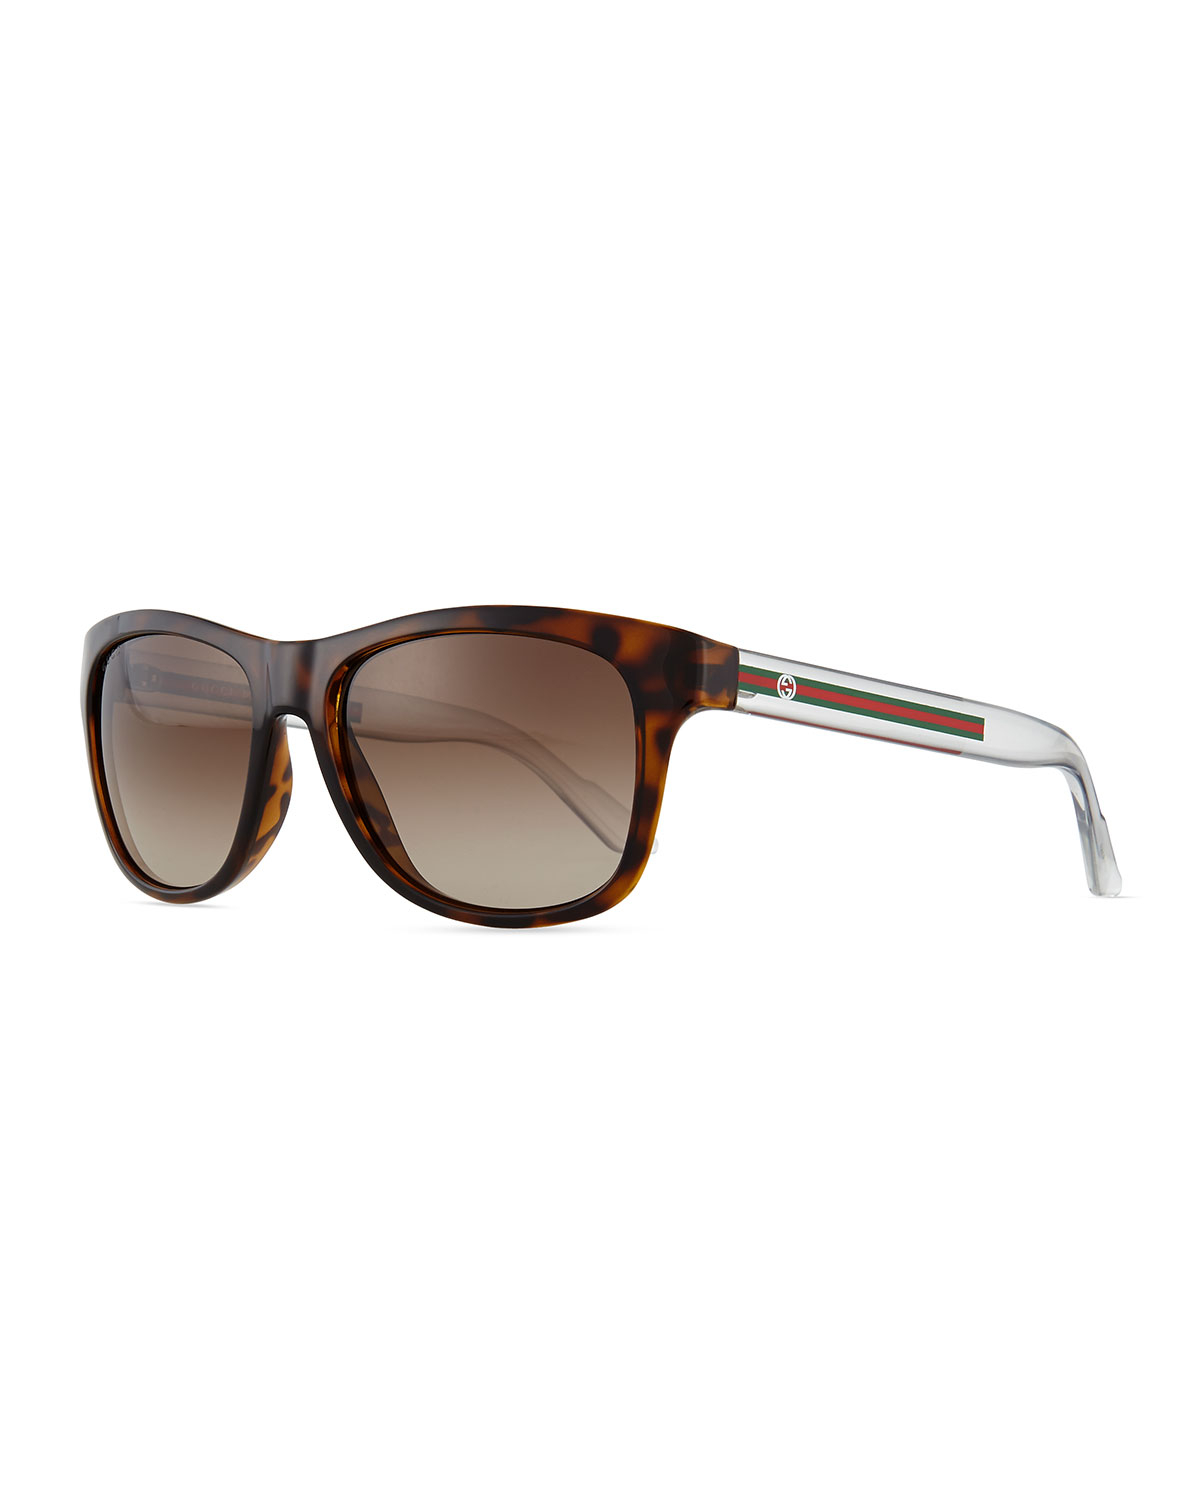 345351b35b2 Lyst - Gucci Youngster Gg-temple Sunglasses in Brown